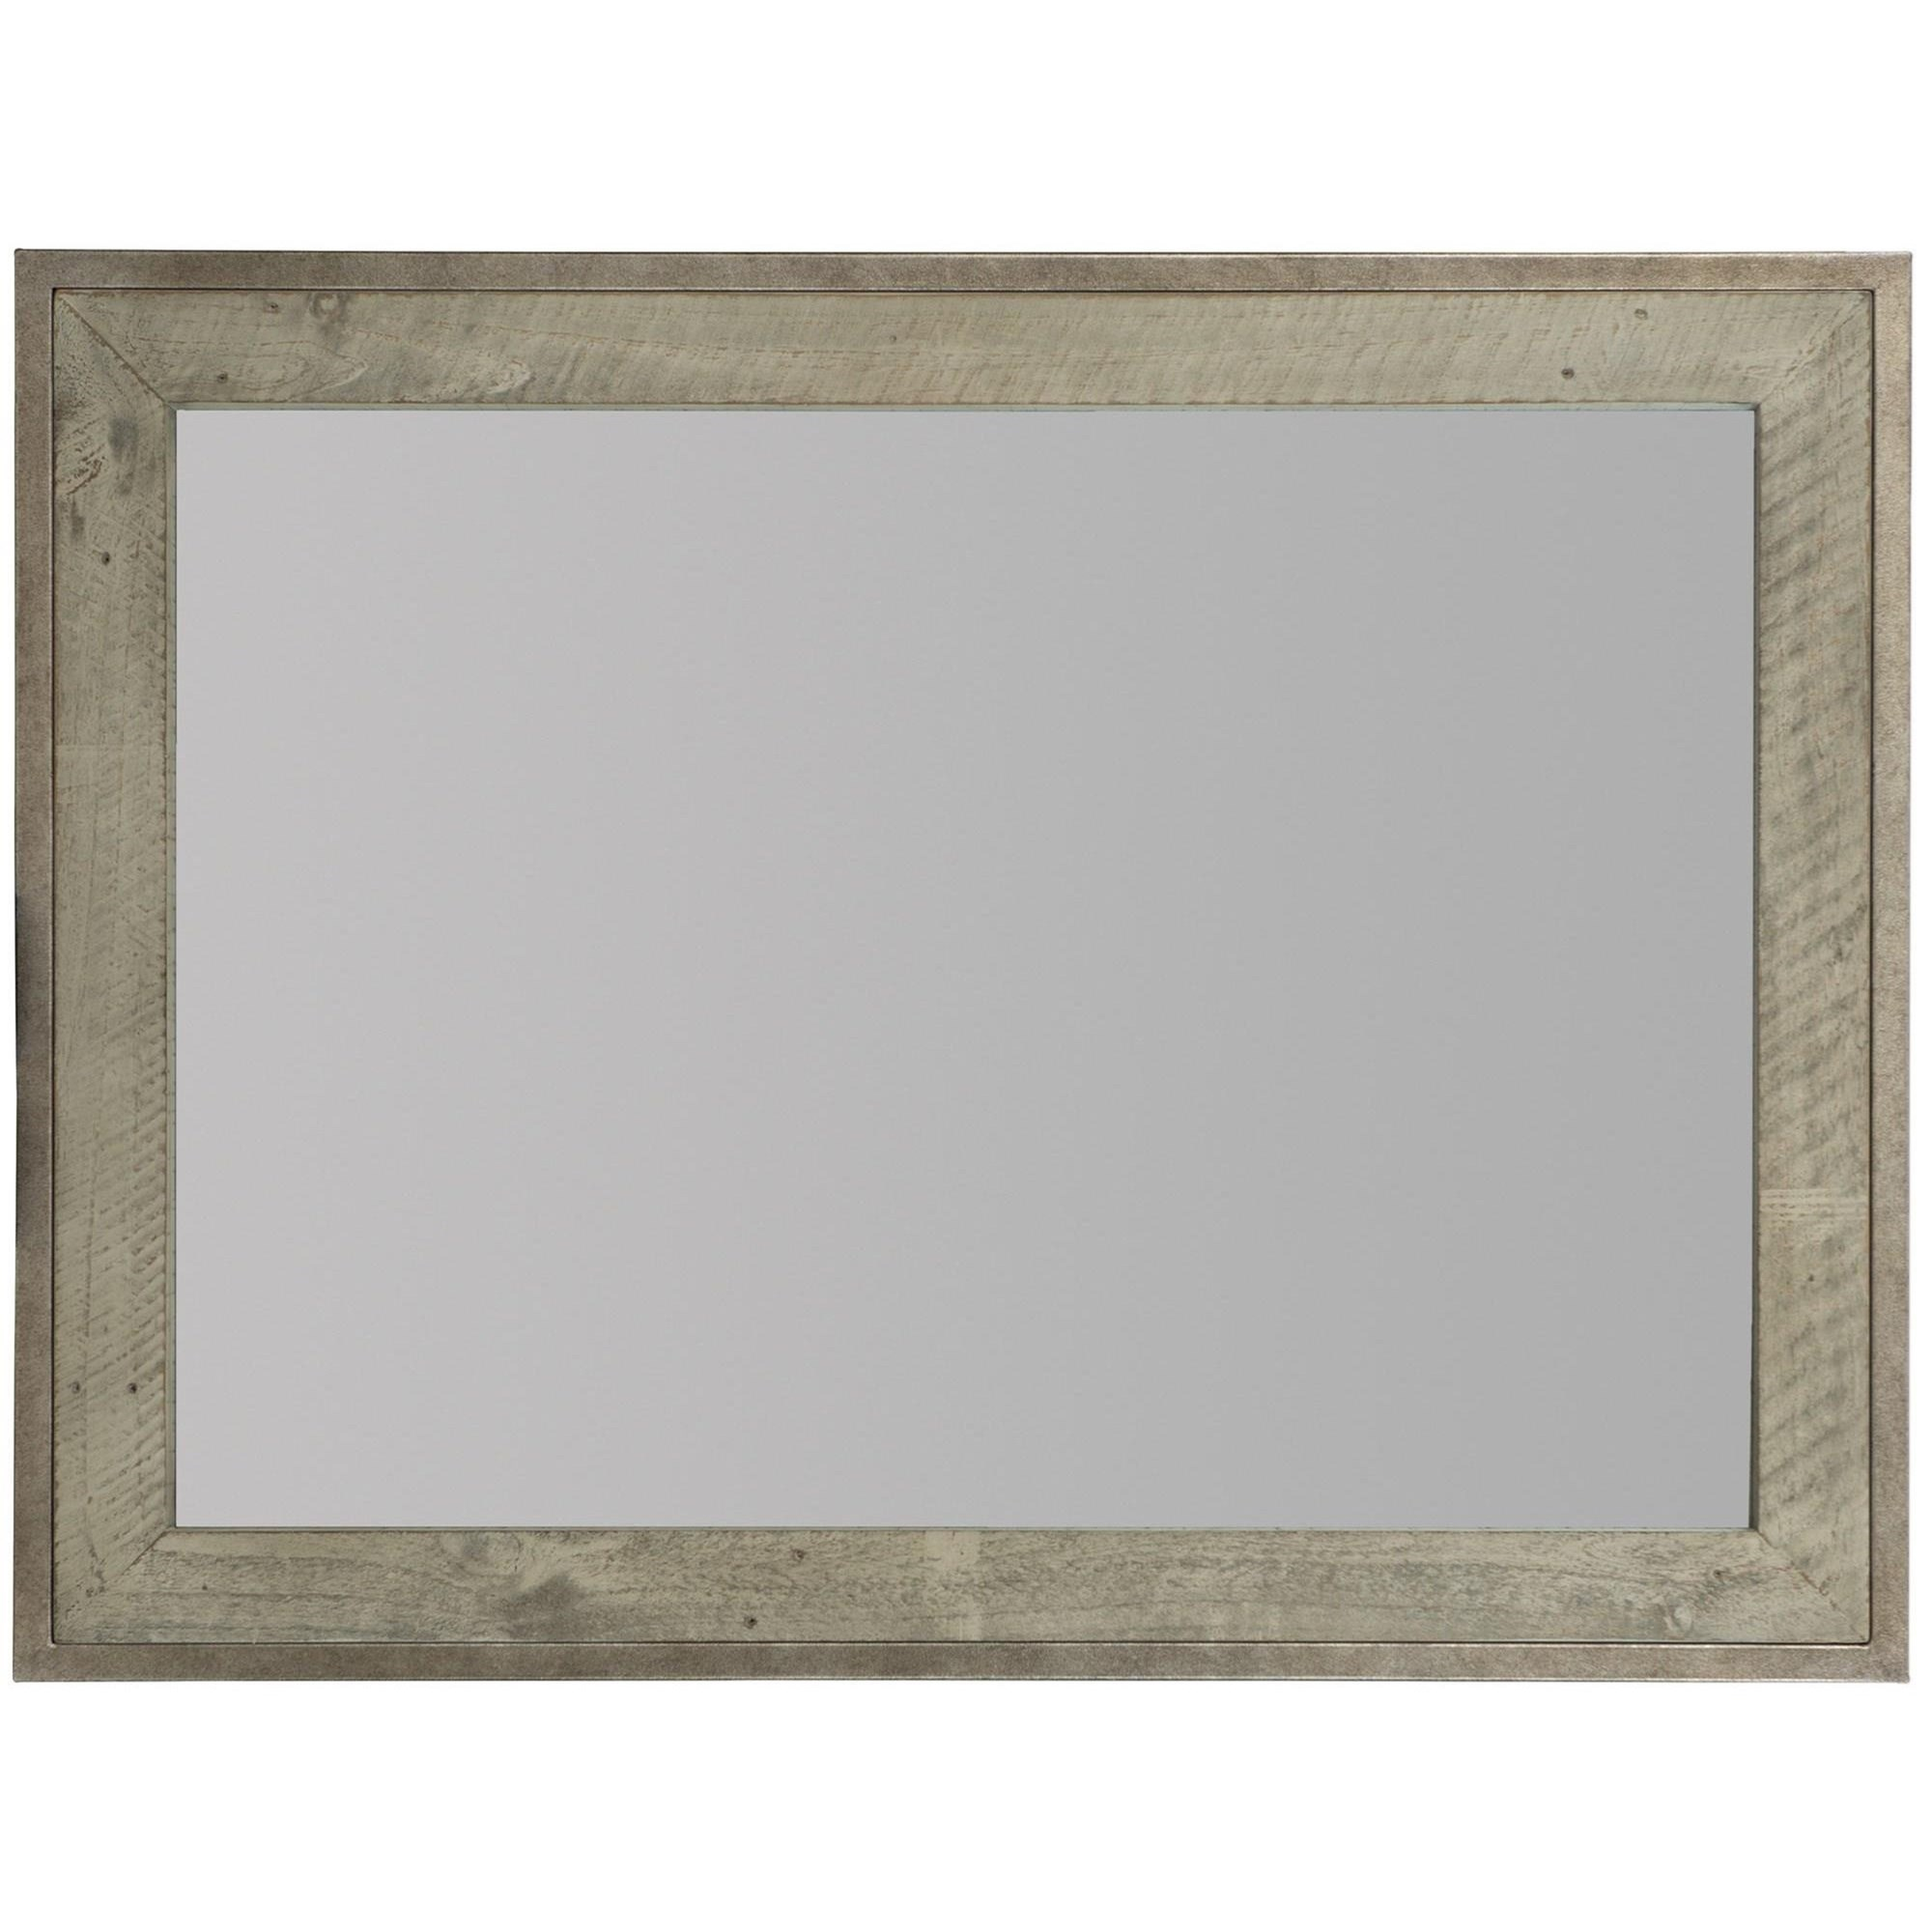 Loft - Highland Park Denys Accent Mirror by Bernhardt at Fisher Home Furnishings